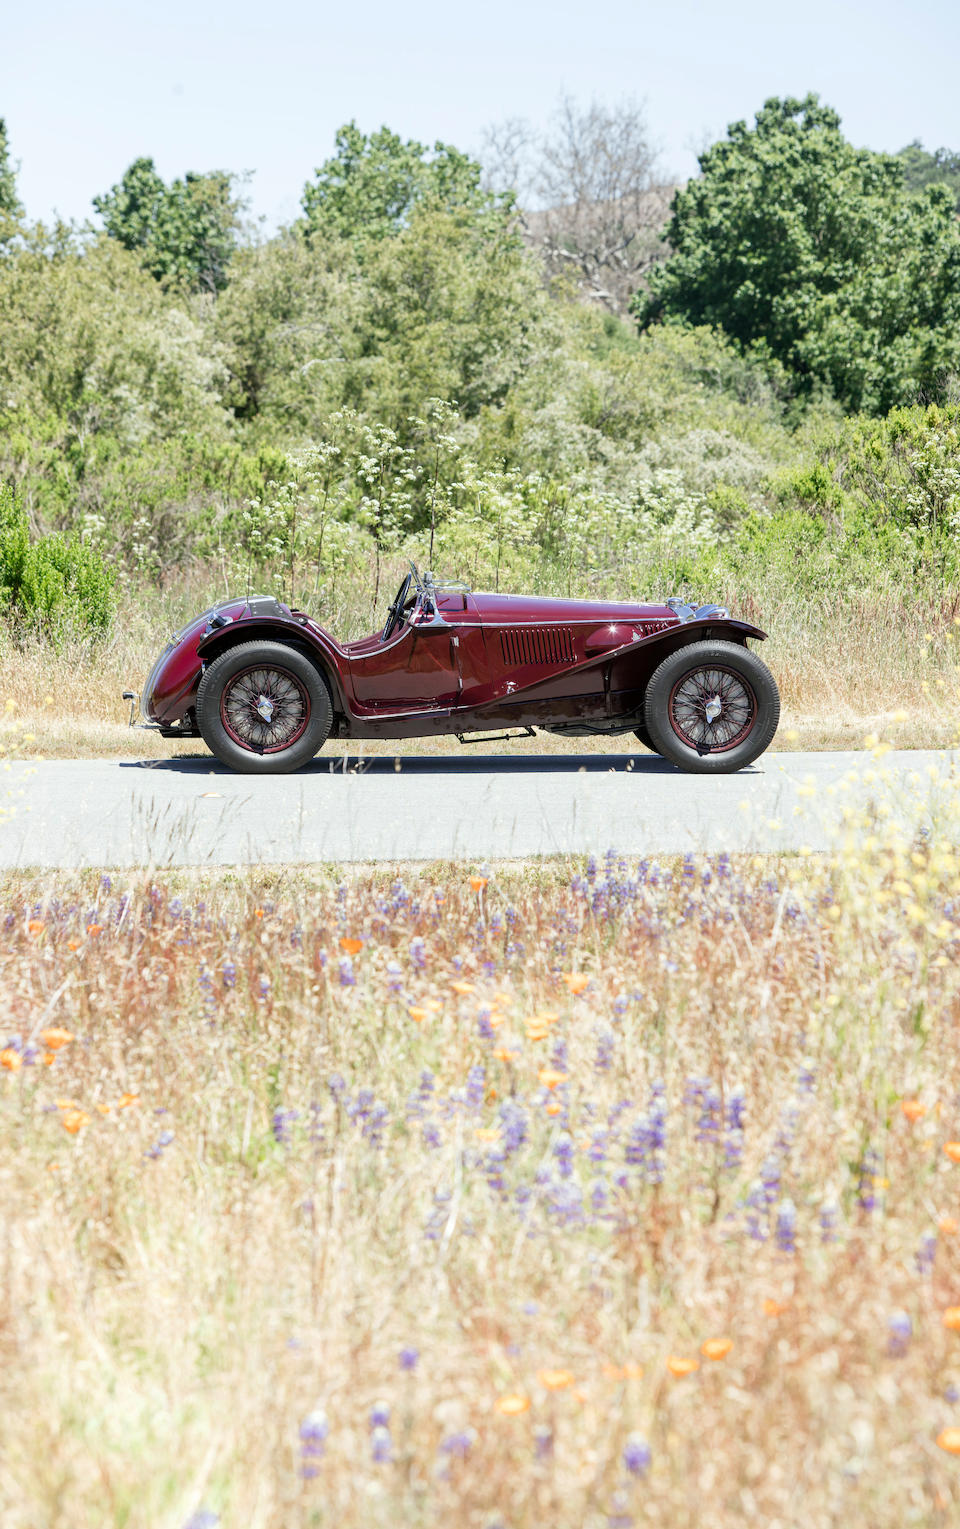 <b>1935 Riley MPH Two-Seater Sports</b><br />Chassis no. 44T 2255 (see text)<br />Engine no. 6F-2577 (see text)